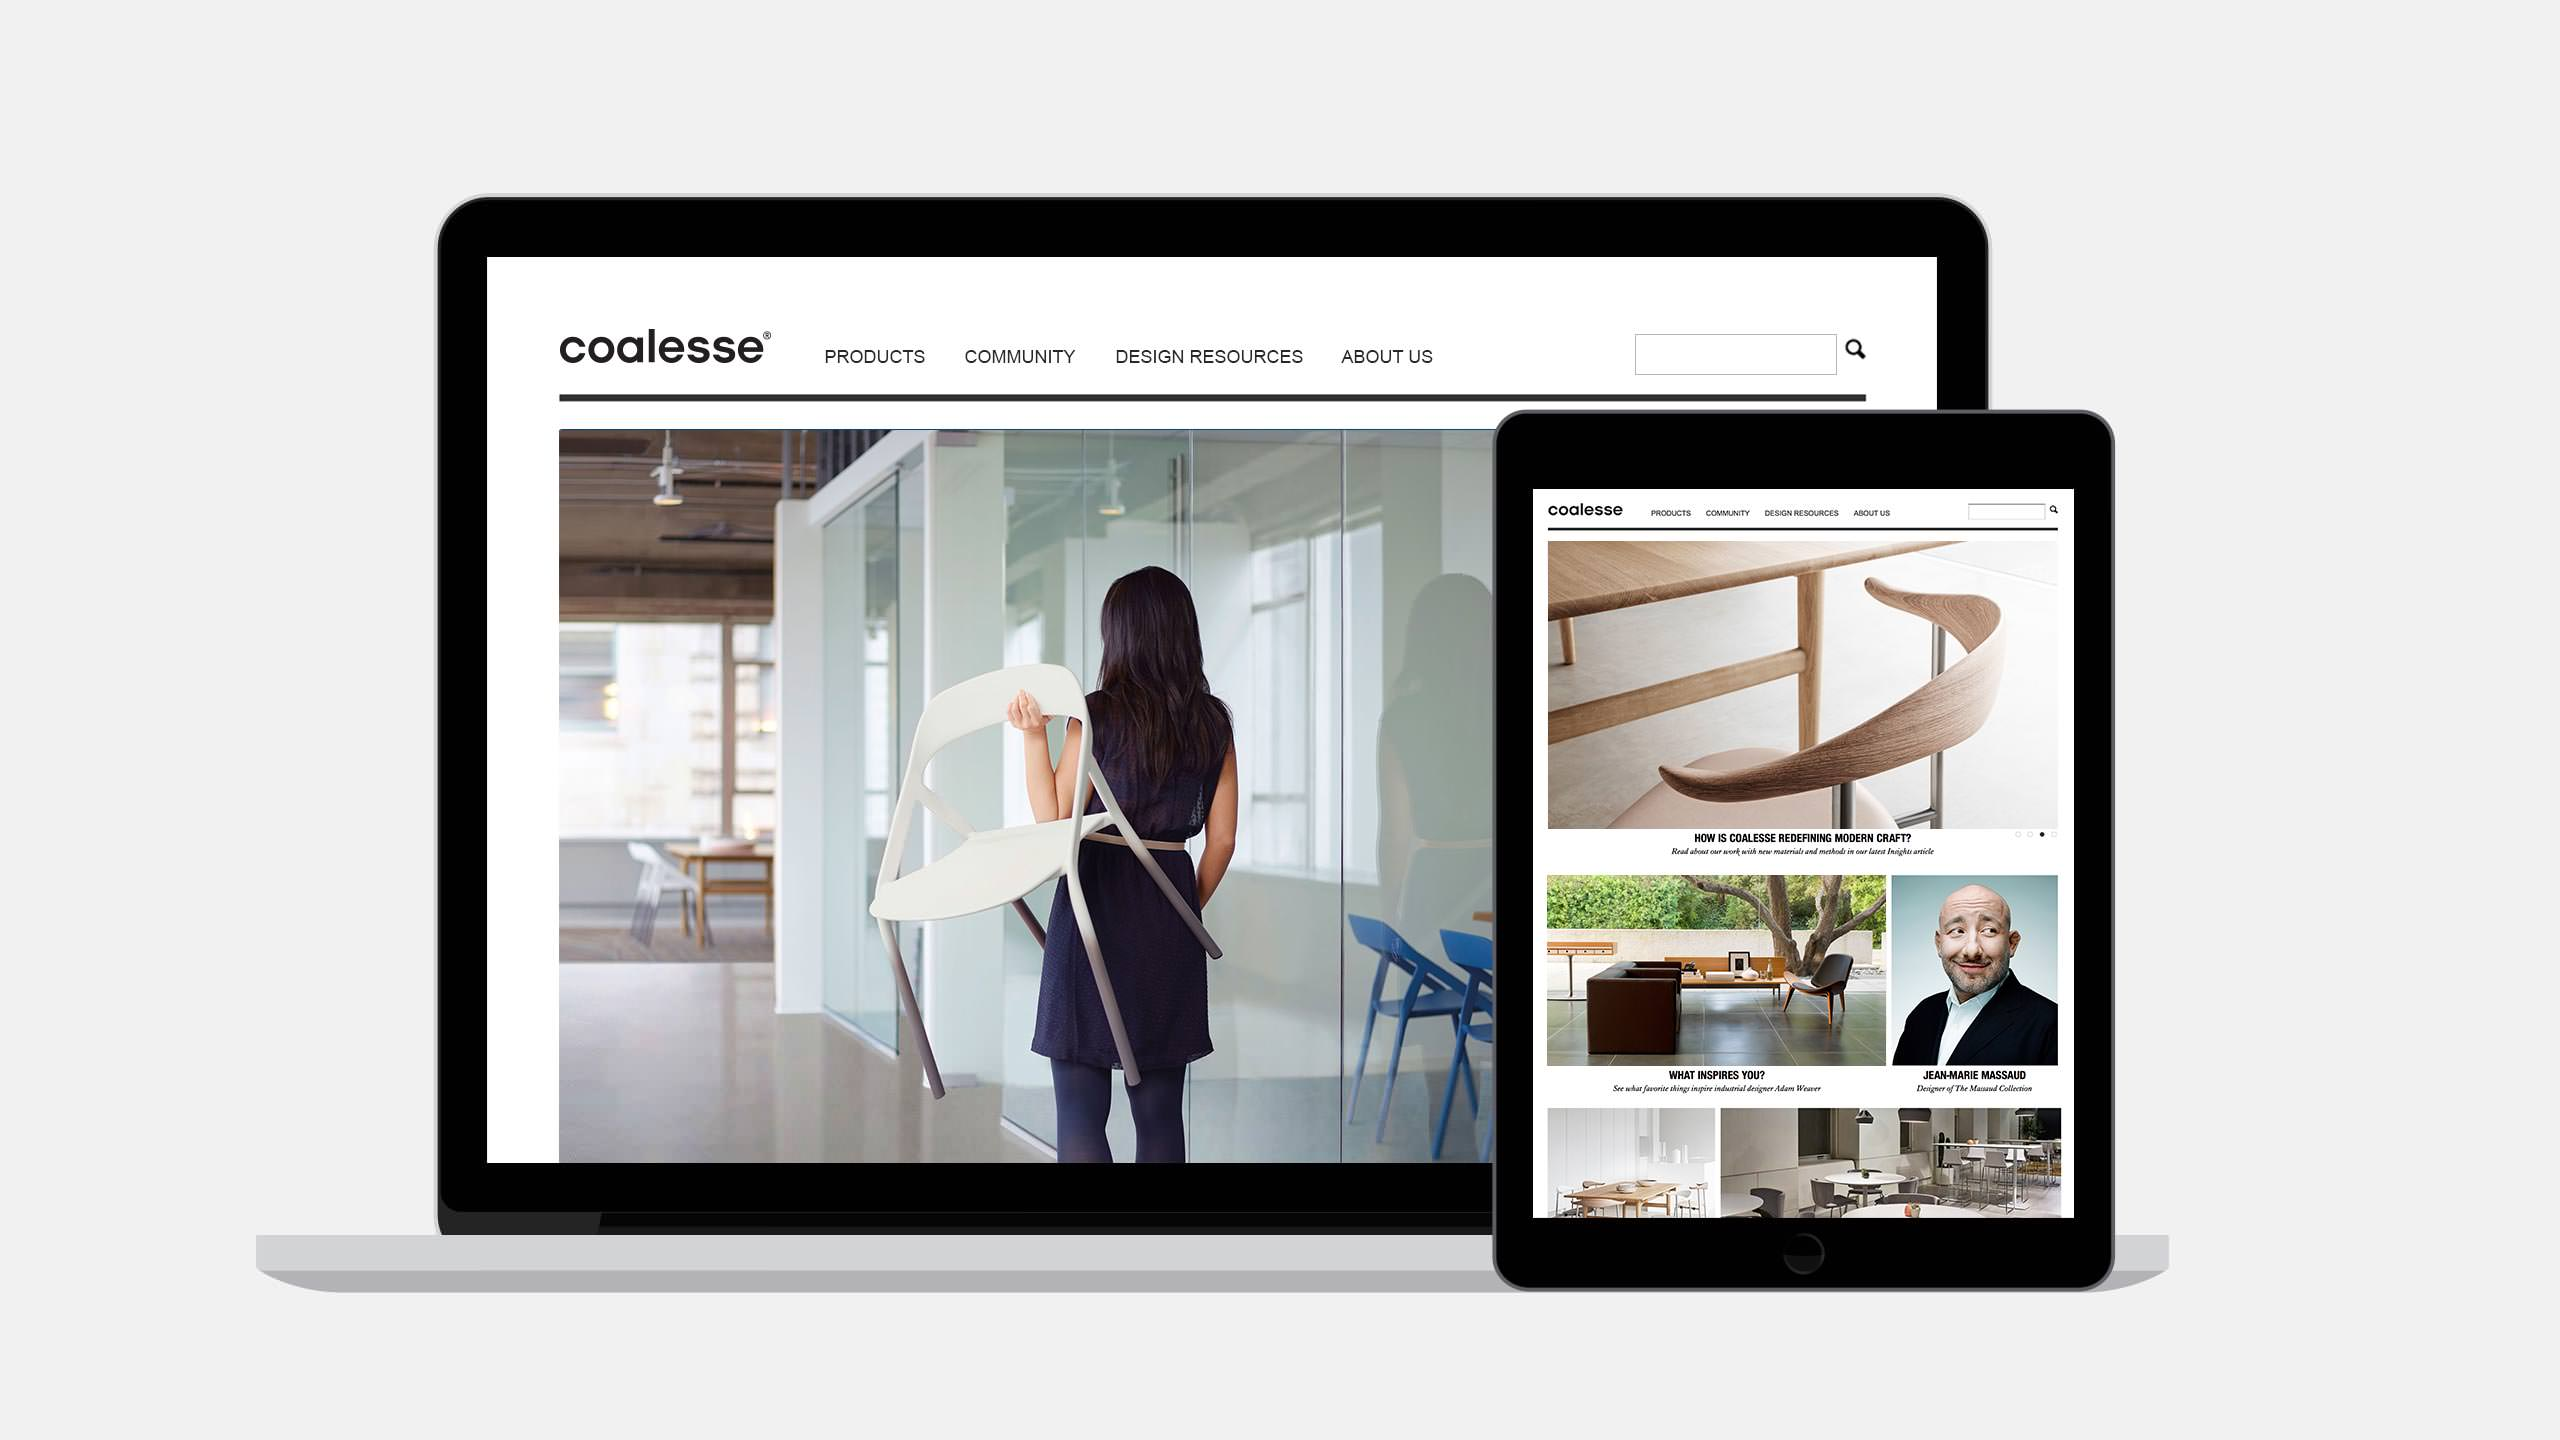 Coalesse Interactive designer website page on laptop and ipad